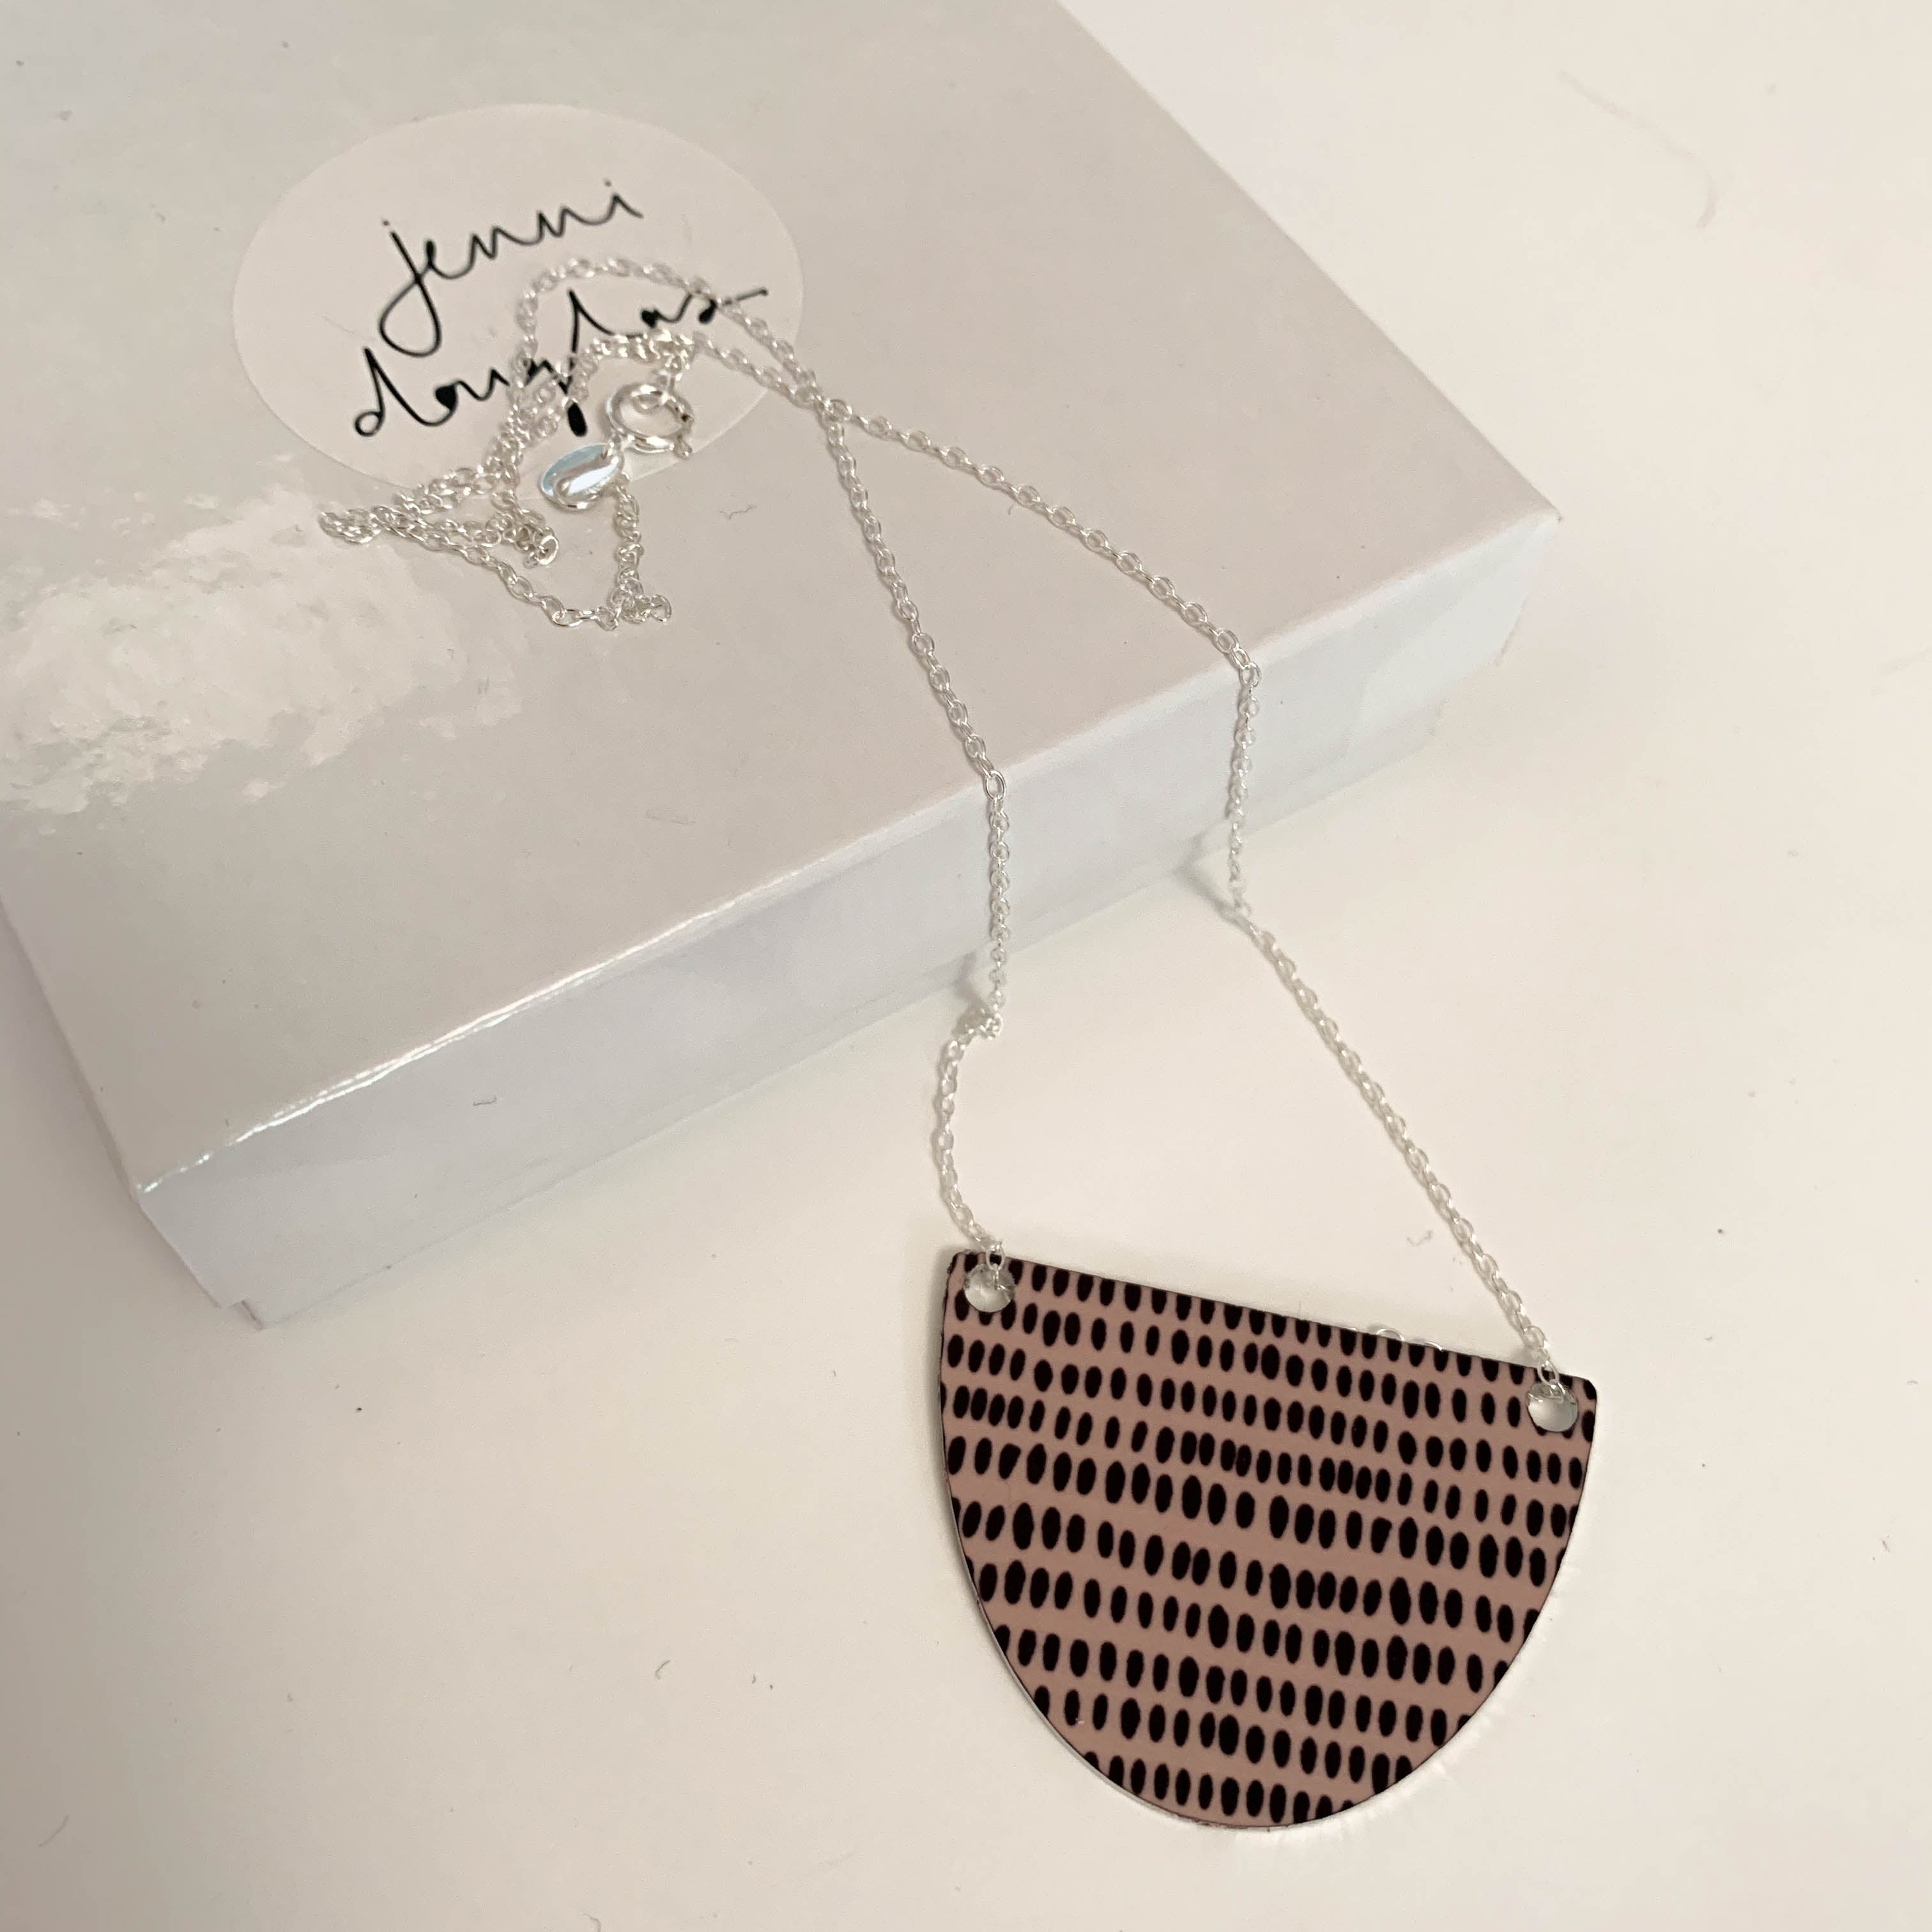 Medium Arc Connect Necklace (New)